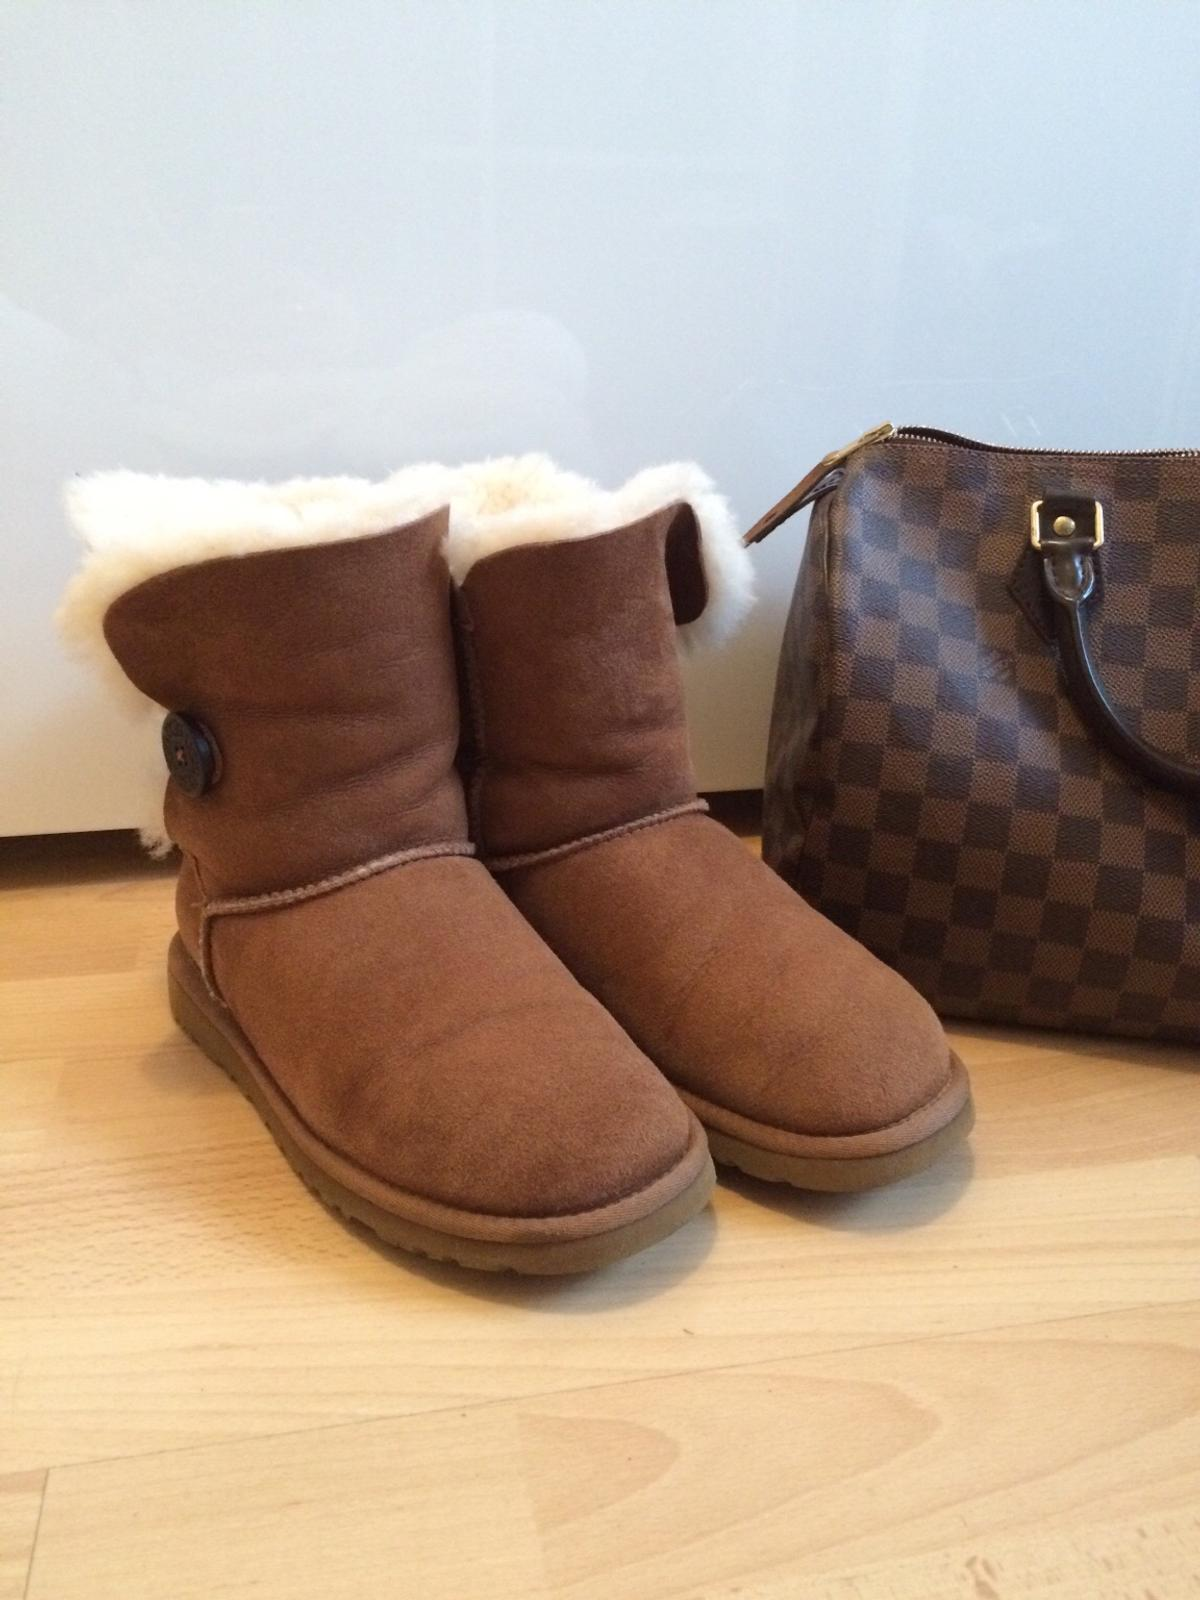 30161 Boots Für 119 Original Chestnut Bailey Button Ugg Hannover In I9WDHE2Y